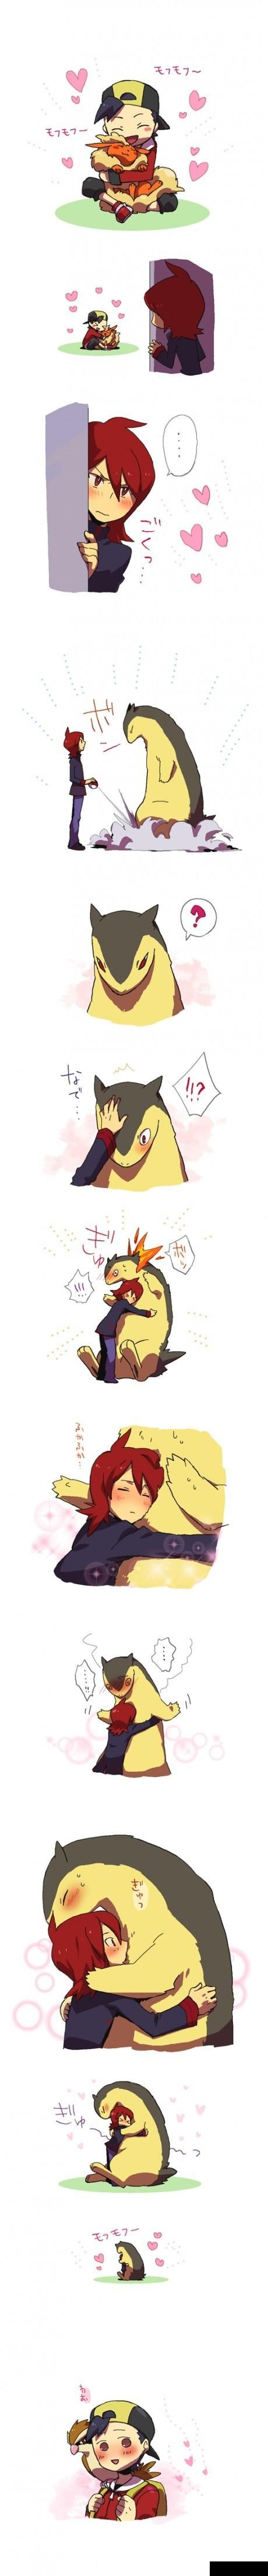 ... I feel the same way. =u= *hugs both Johto Fire and Water starters and Espurr*